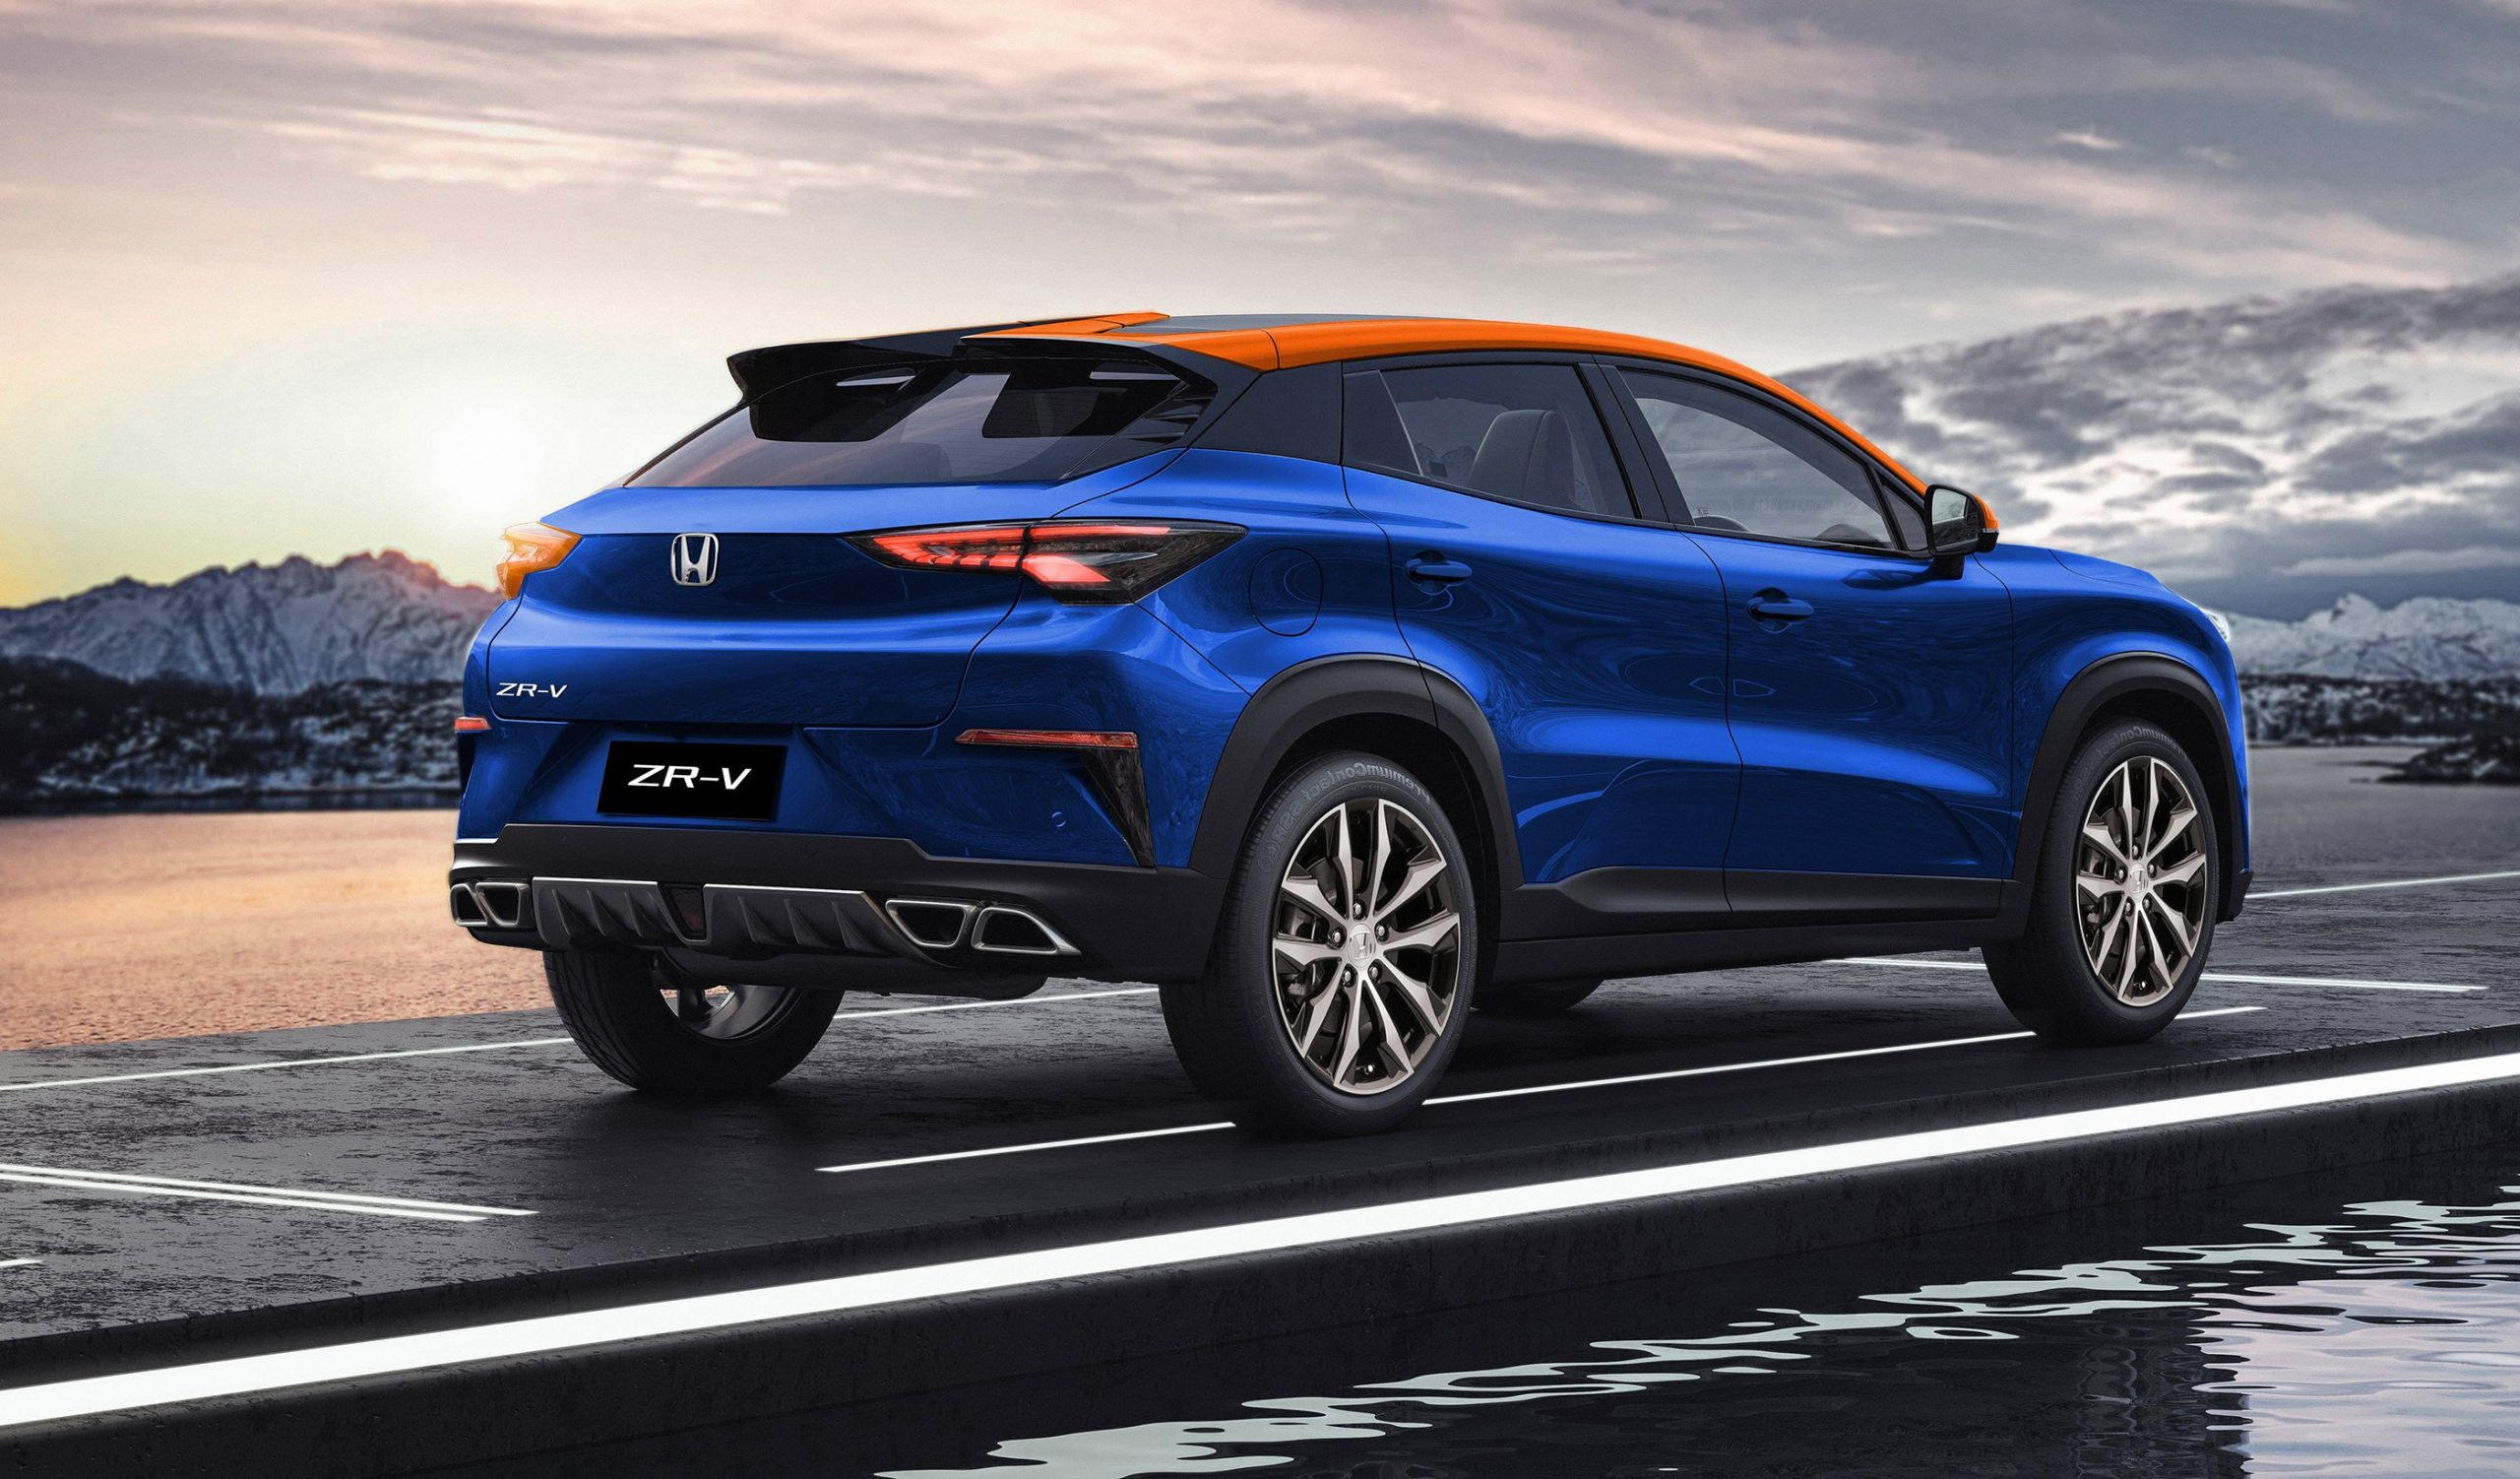 Honda Zr V Looks Like The Cr V Successor Thatll Take You By Surprise 1 Scaled